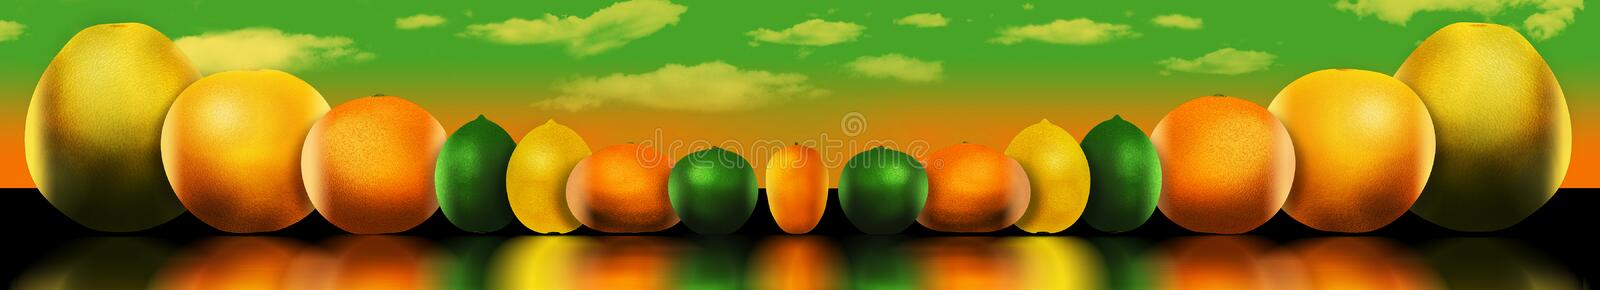 Eight popular citrus fruits are pictured. These include: pomelo. Grapefruit, orange, lime, lemon, tangerine, key lime and kumquat. This is an illustration vector illustration